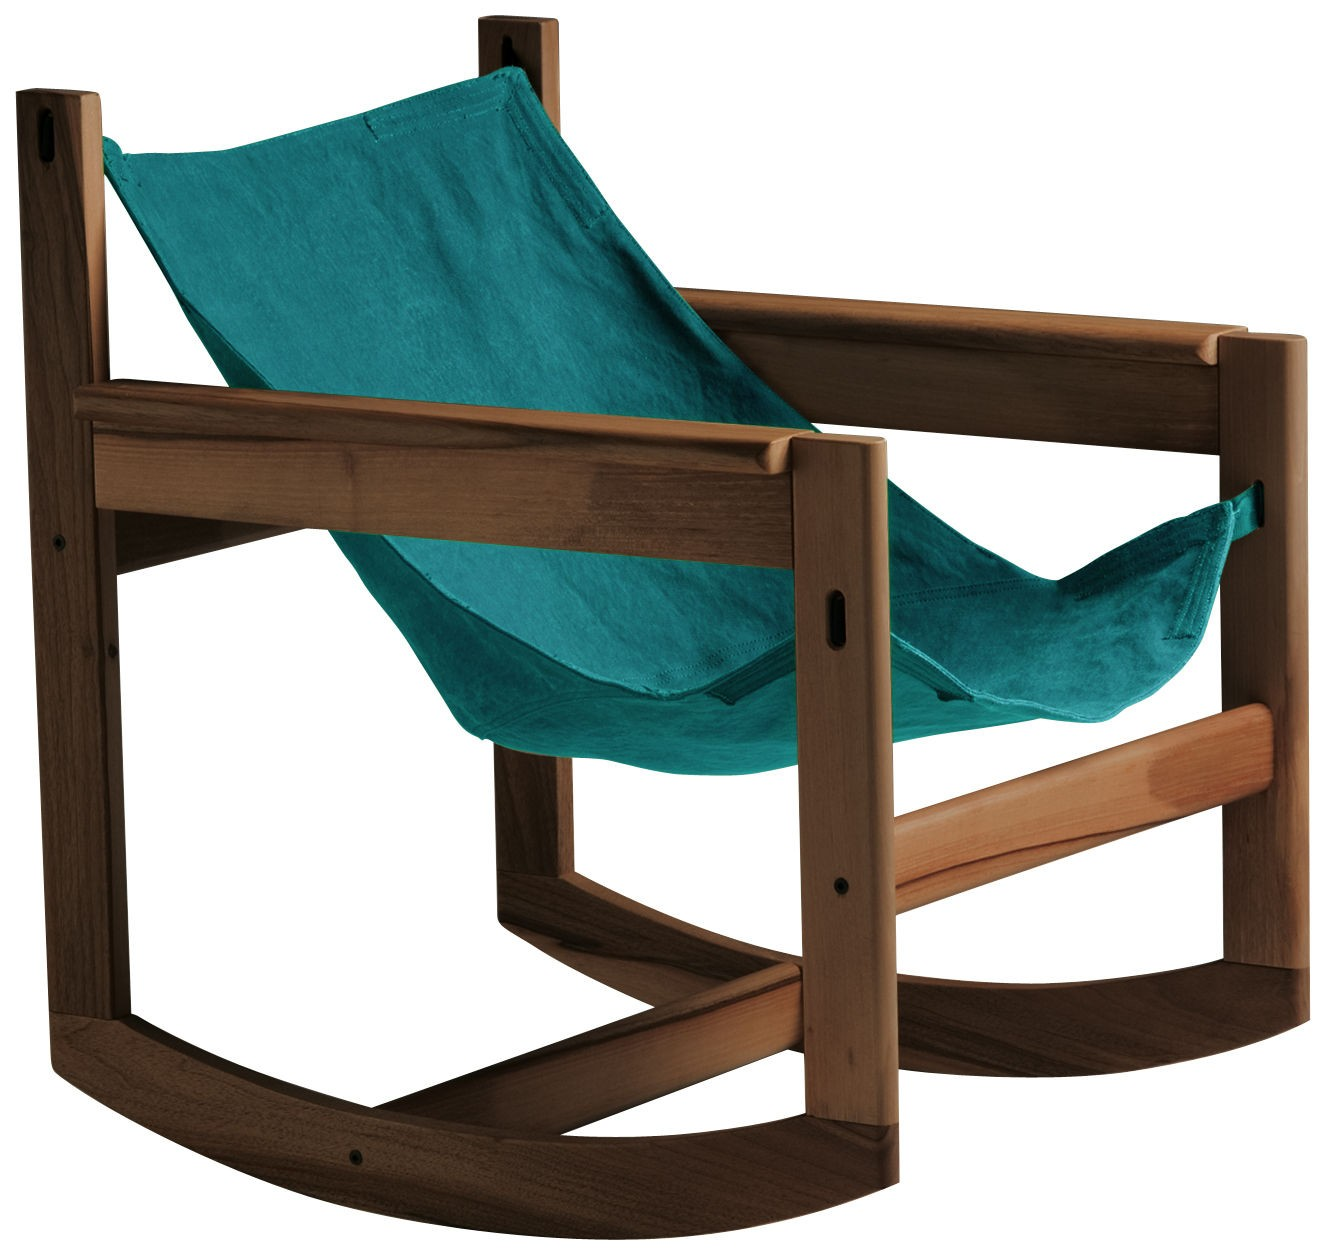 Rocking chair - , the free encyclopedia